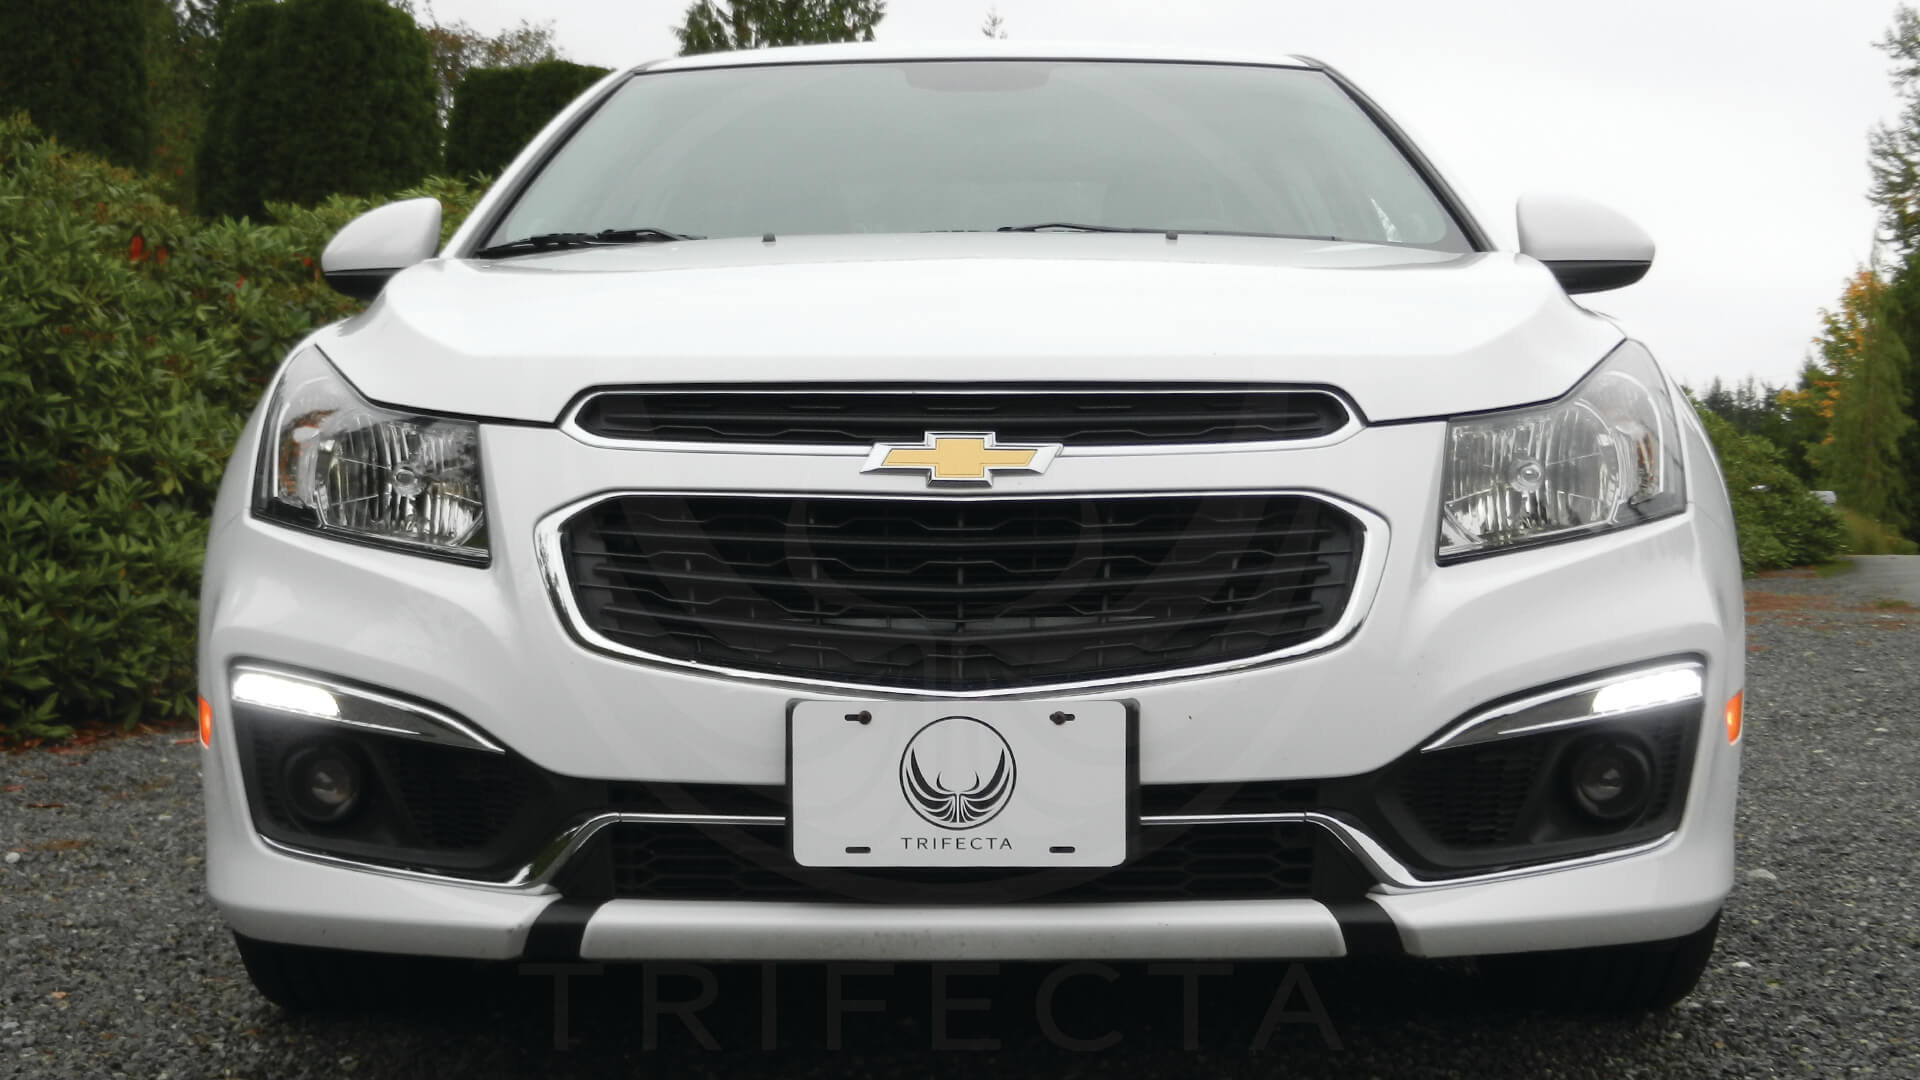 Product Review: 2011--2015 Chevrolet Cruze - 2016 Cruze Limited - 1.4L Turbo Advantage